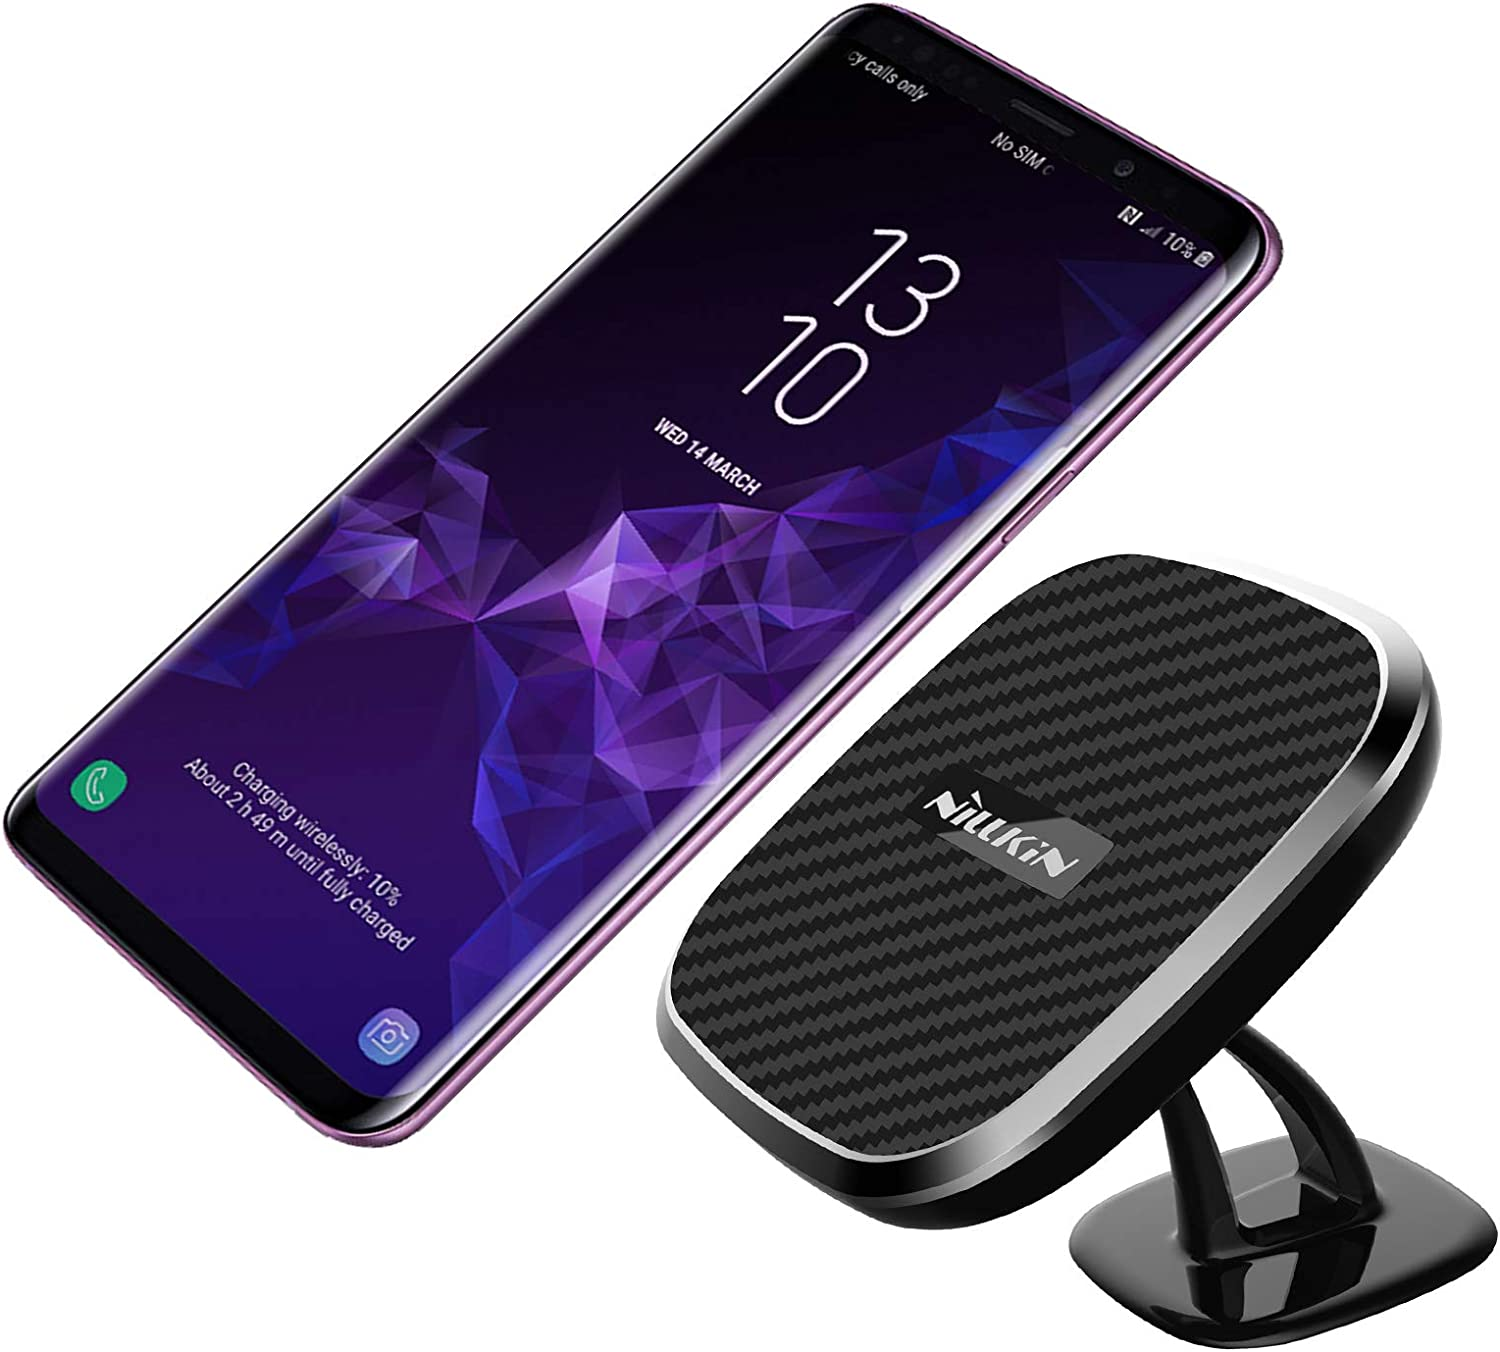 Qi Magnetic Wireless Car Fast Charger WYNK Car Mount Phone Holder Charging for iPhone 11//11 Pro//11 Pro Max//XS//XS Max//XR//X//8//8 Plus,Samsung Galaxy S10e//S10//S10+//Note 10//9 and All QI-Enabled Devices